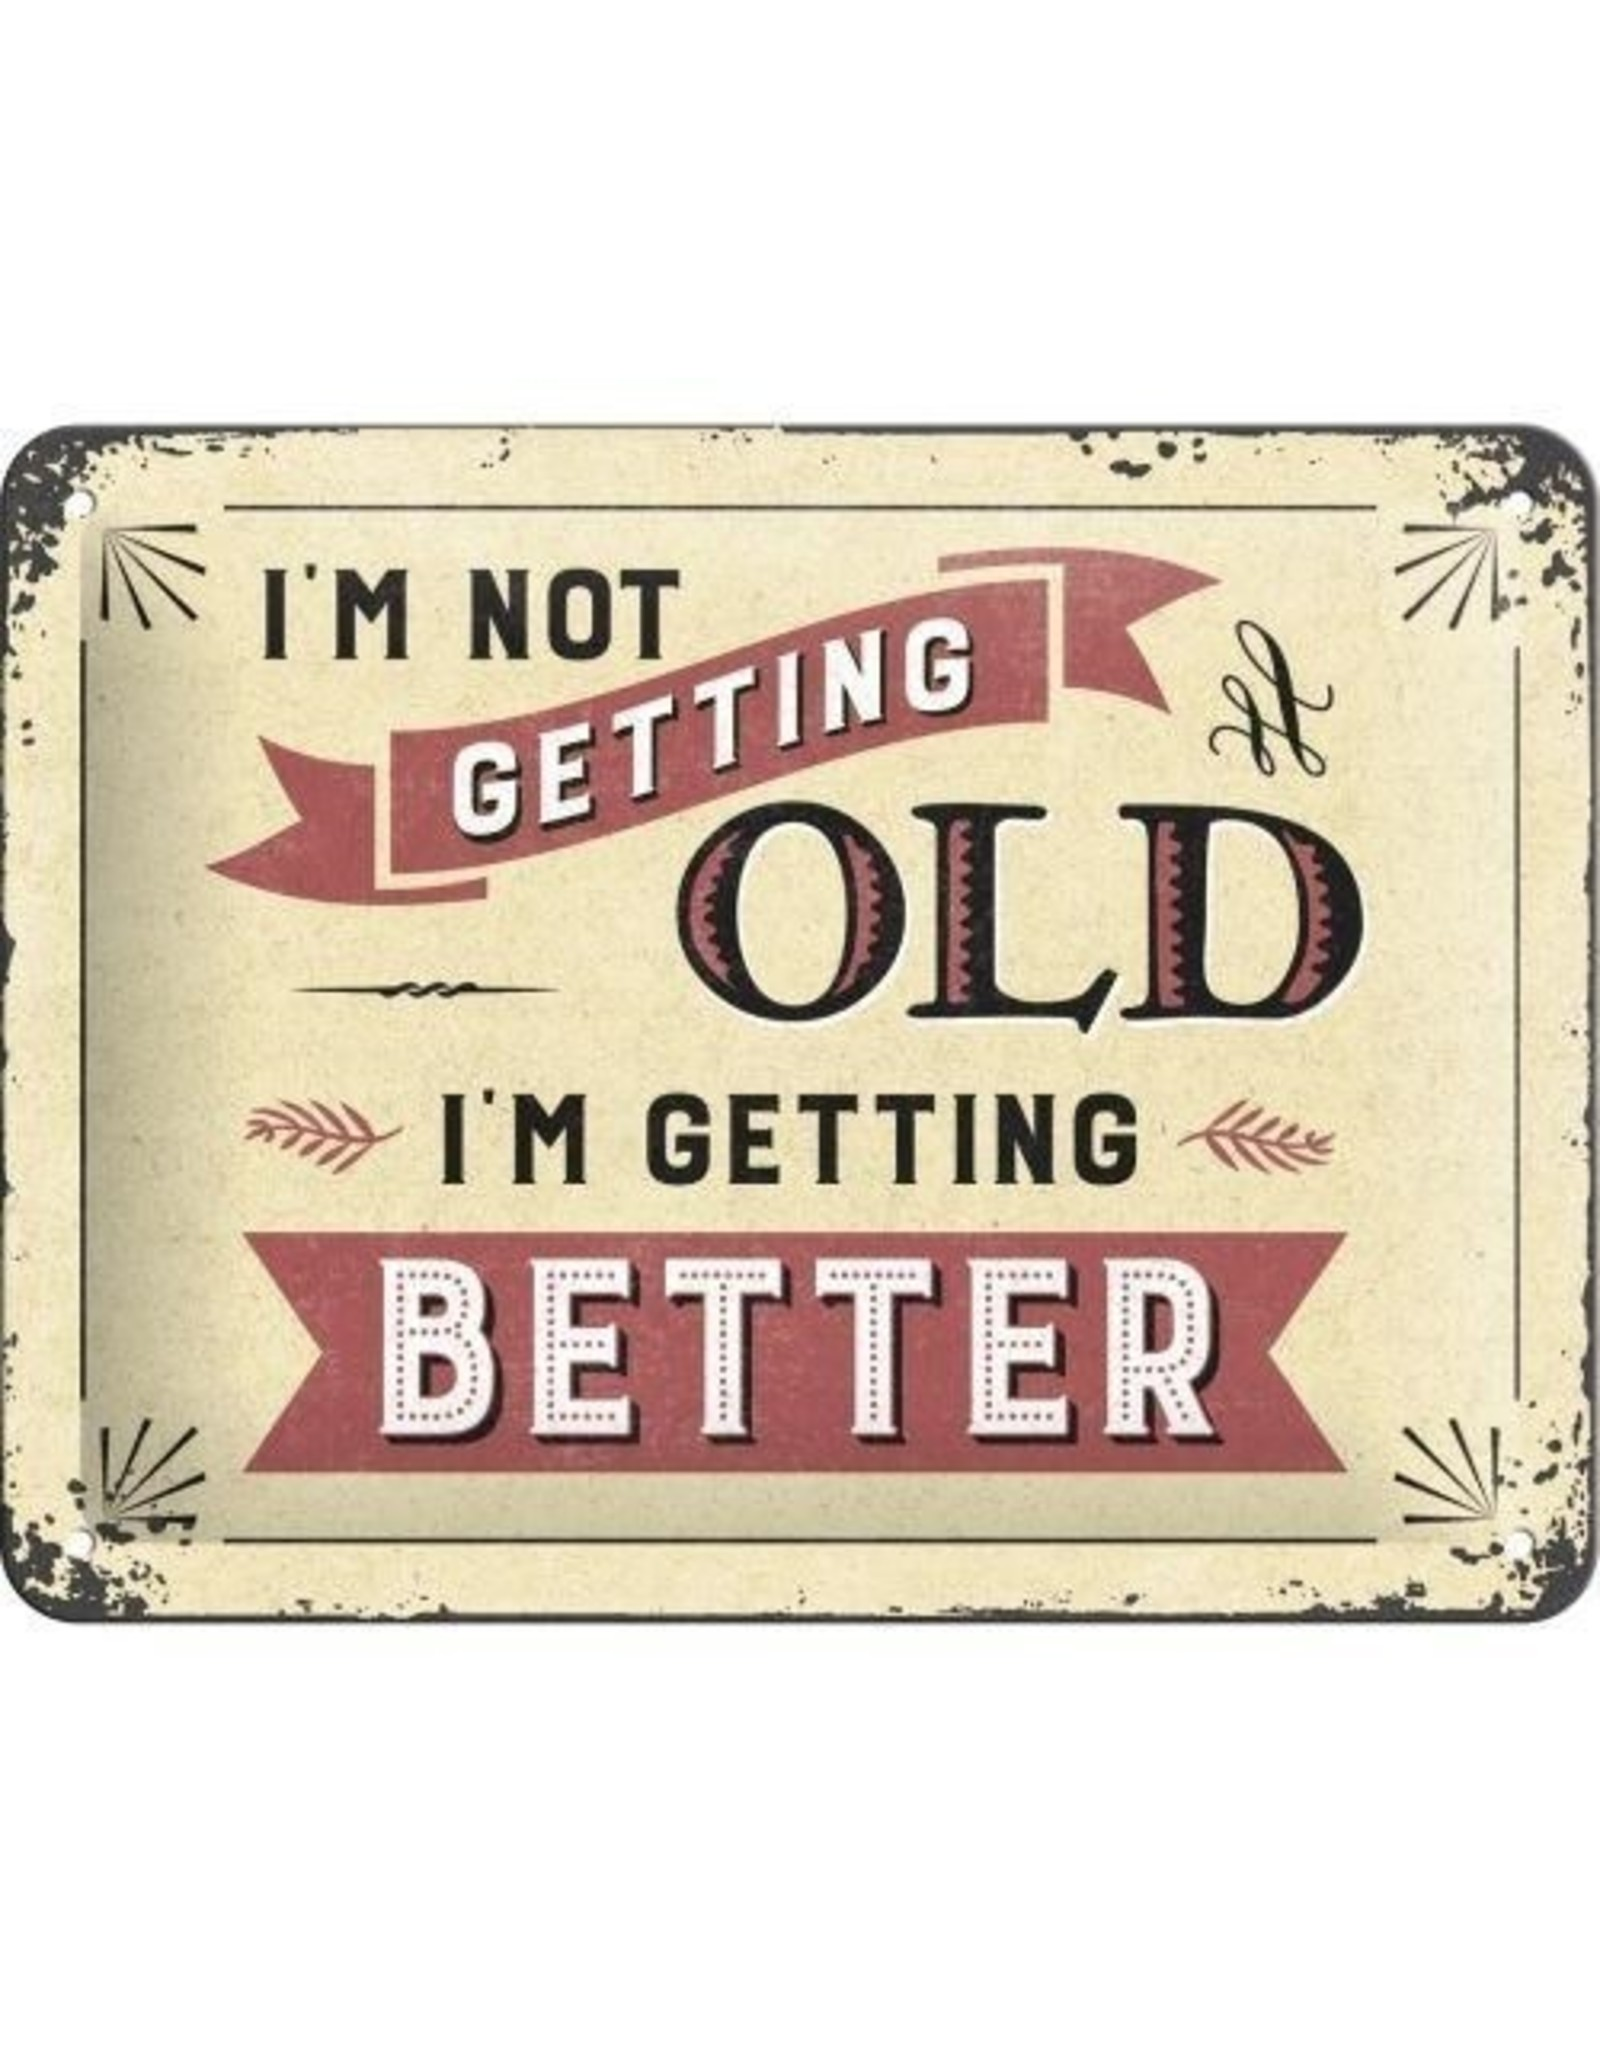 sign with text: I'm not getting old